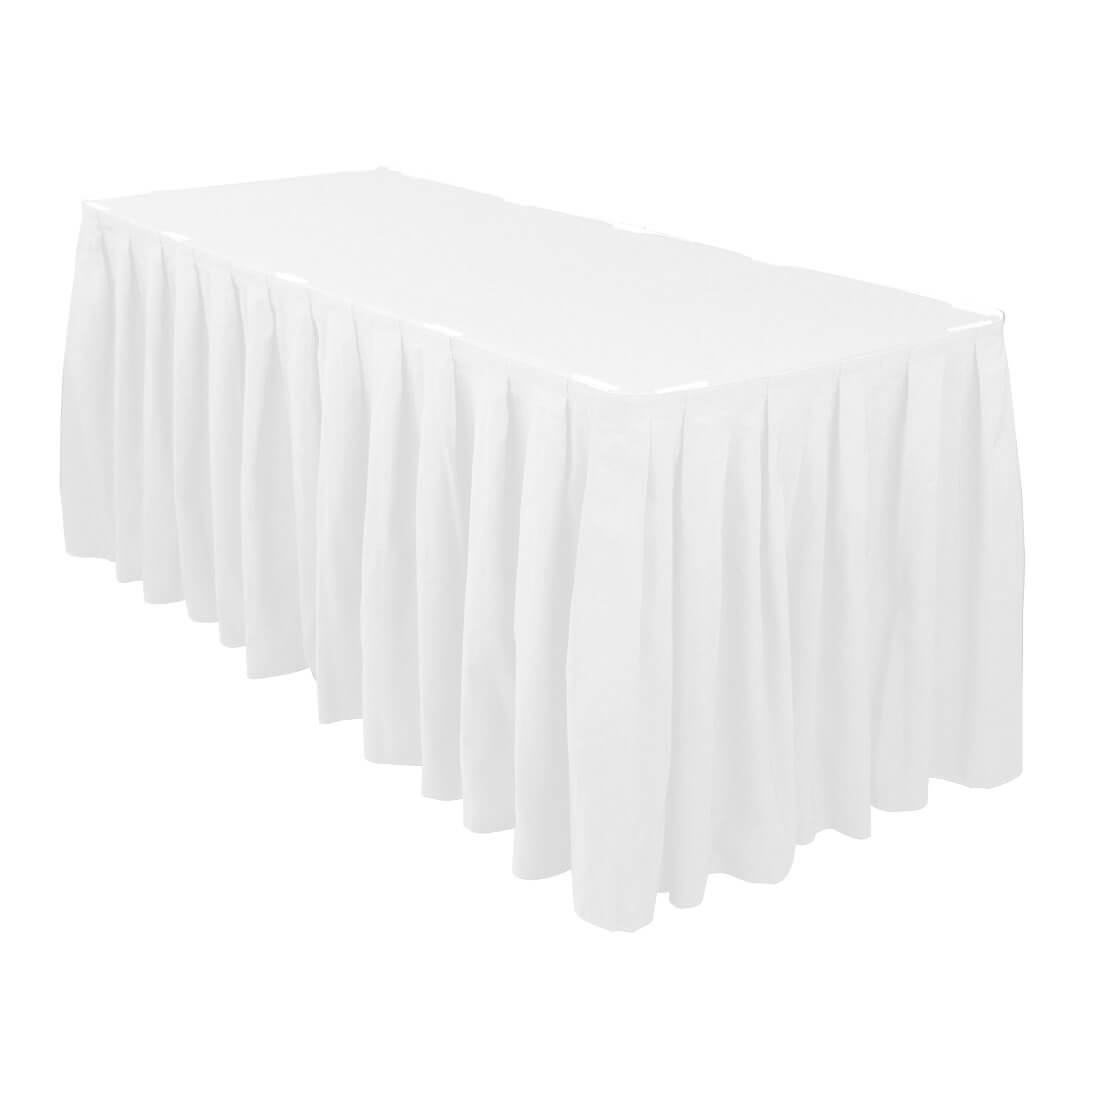 Banquet Table Skirt Rental in Riverwoods